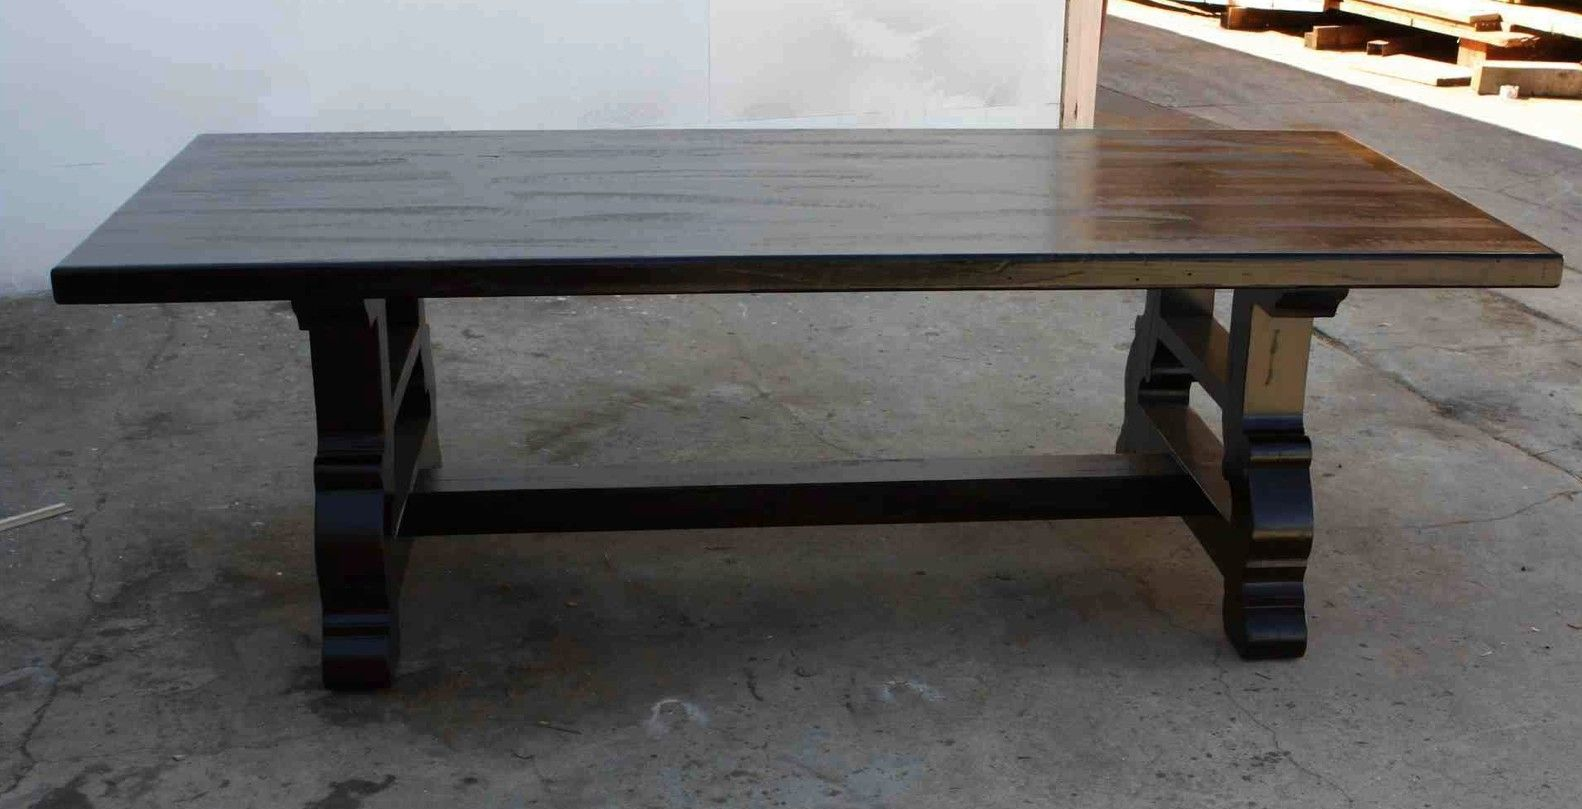 Handmade Spanish Trestle Dining Table In Reclaimed Wood By